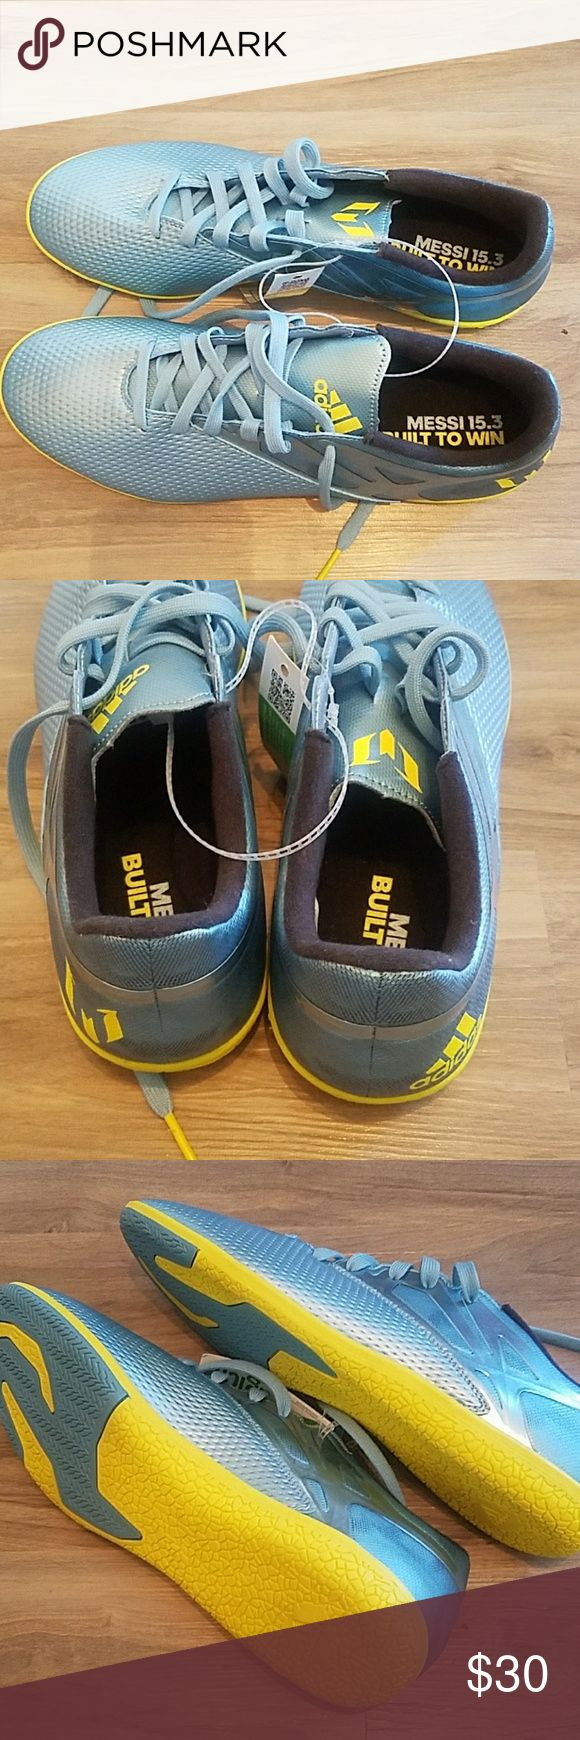 NEW WITH TAGS Lionel Messi Indoor Soccer Shoes S11 Brand new with tags never worn Lionel Messi Indoor Soccer Shoes Size 11. Never been worn - must go!! adidas Shoes Athletic Shoes